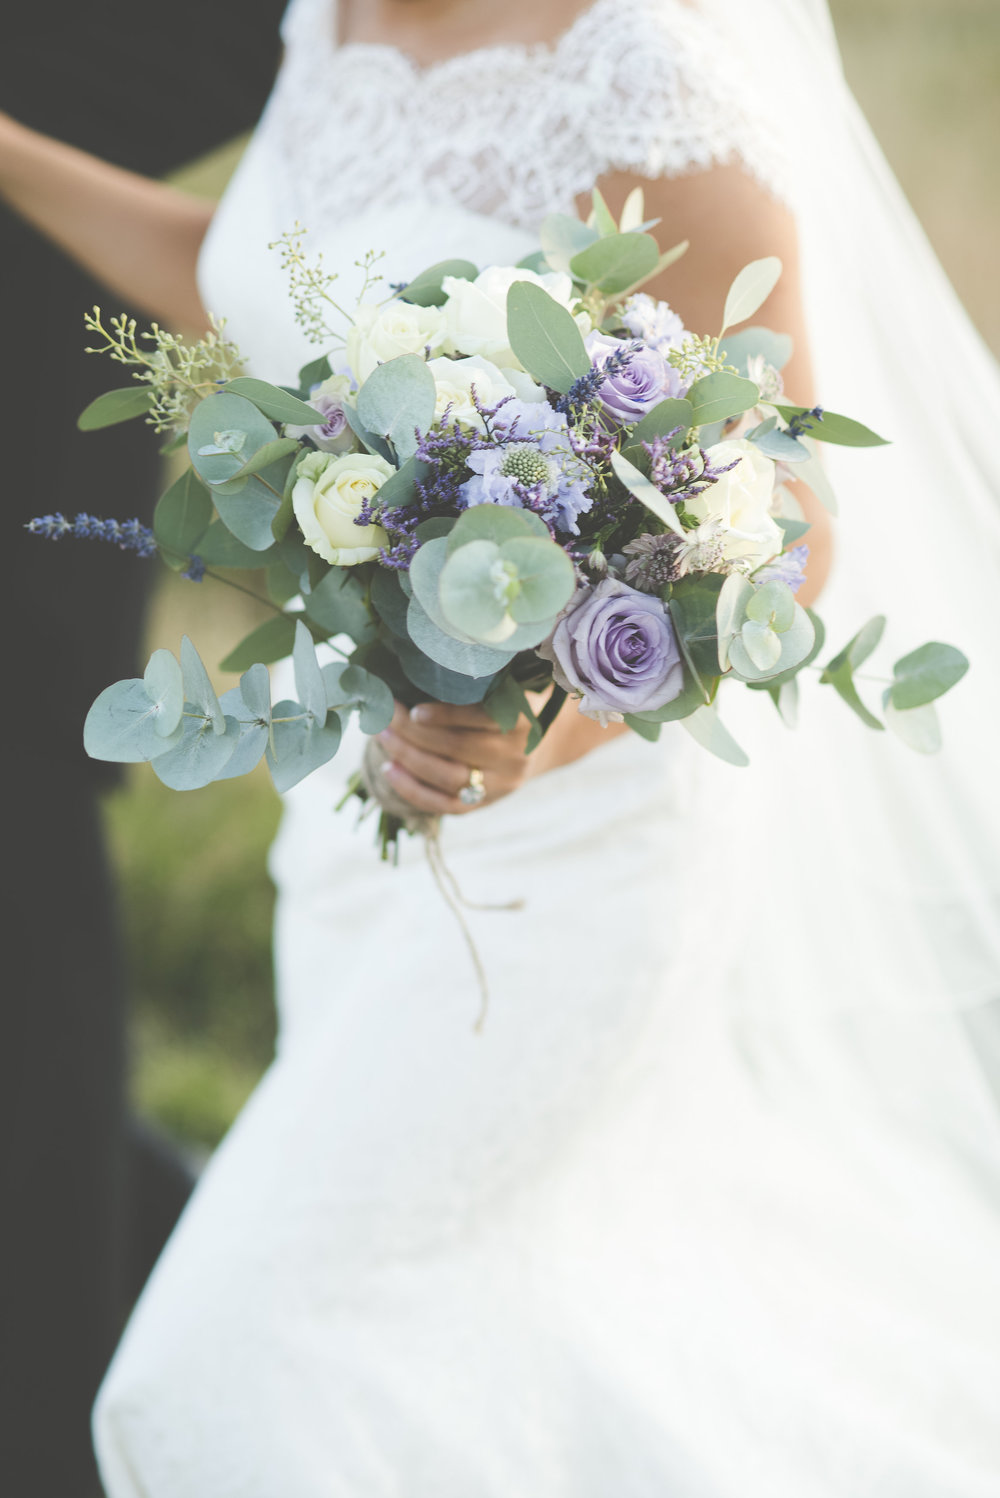 Wedding flowers by Jennifer Pinder. Late summer wild flower bouquet in purple and white. London Kent wedding florist.